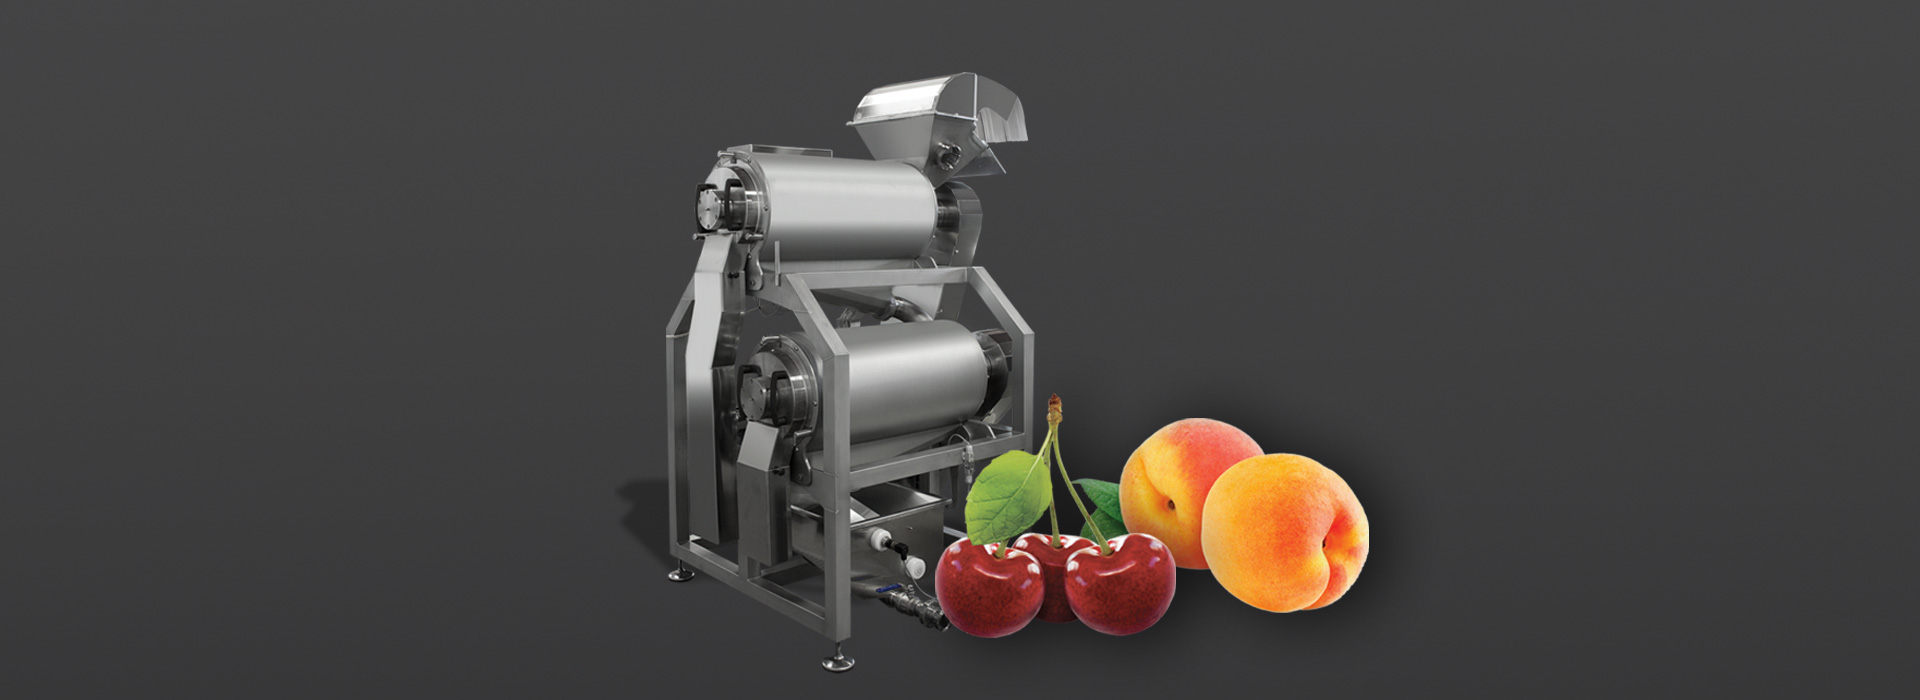 sraml-stone-fruit-processing